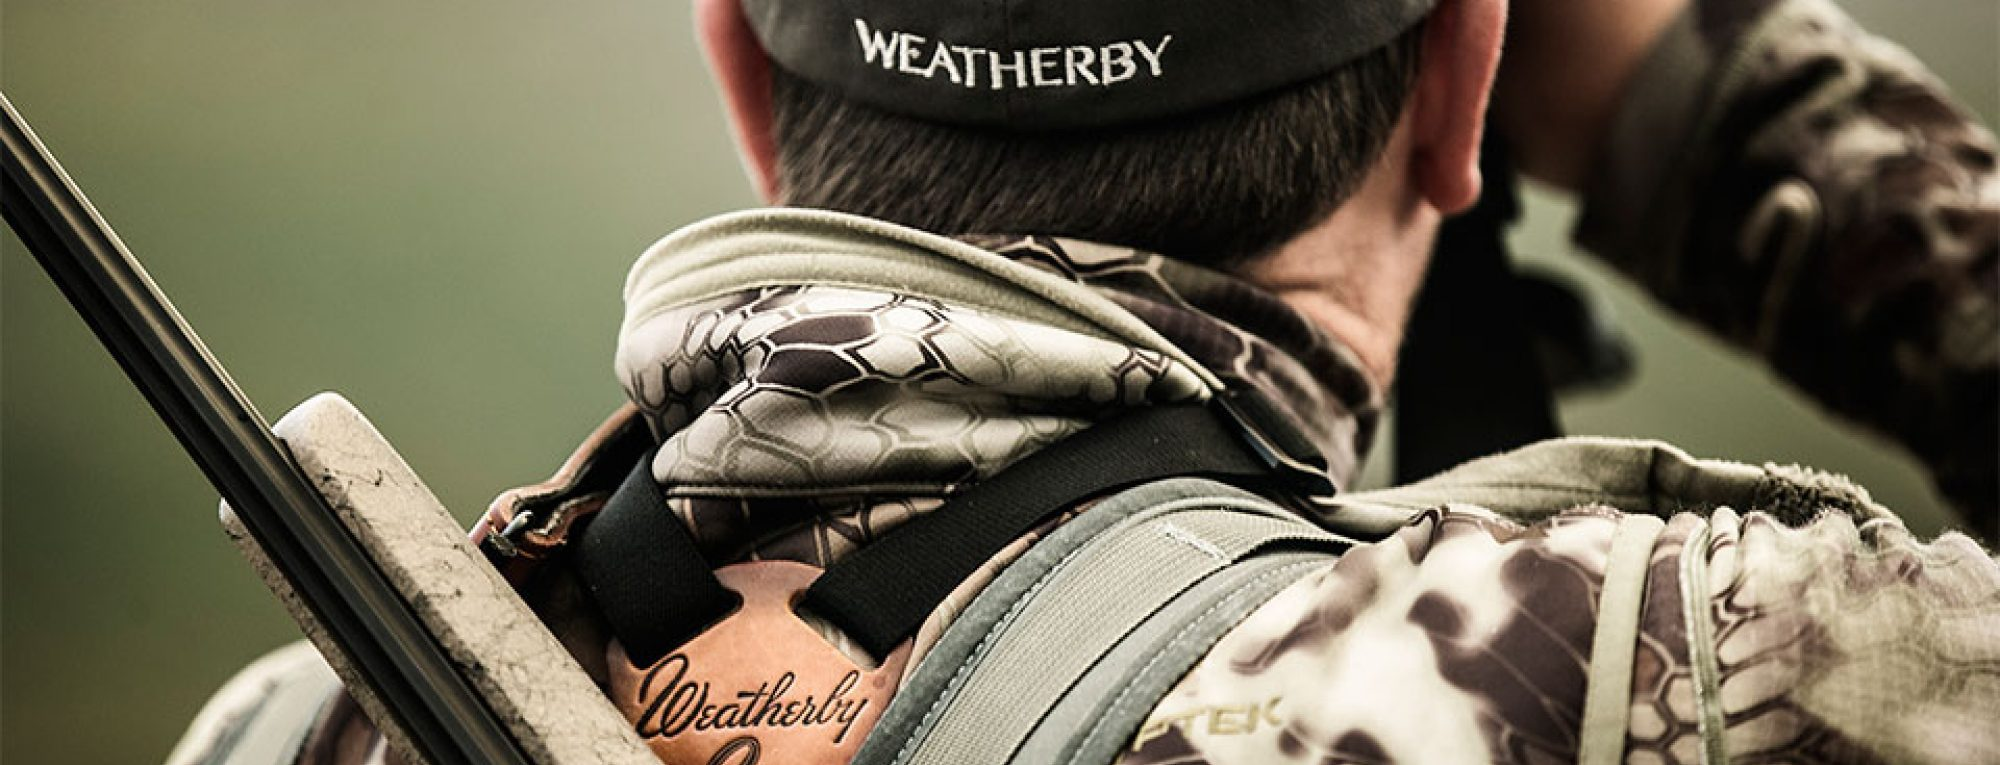 WEATHERBY.SK